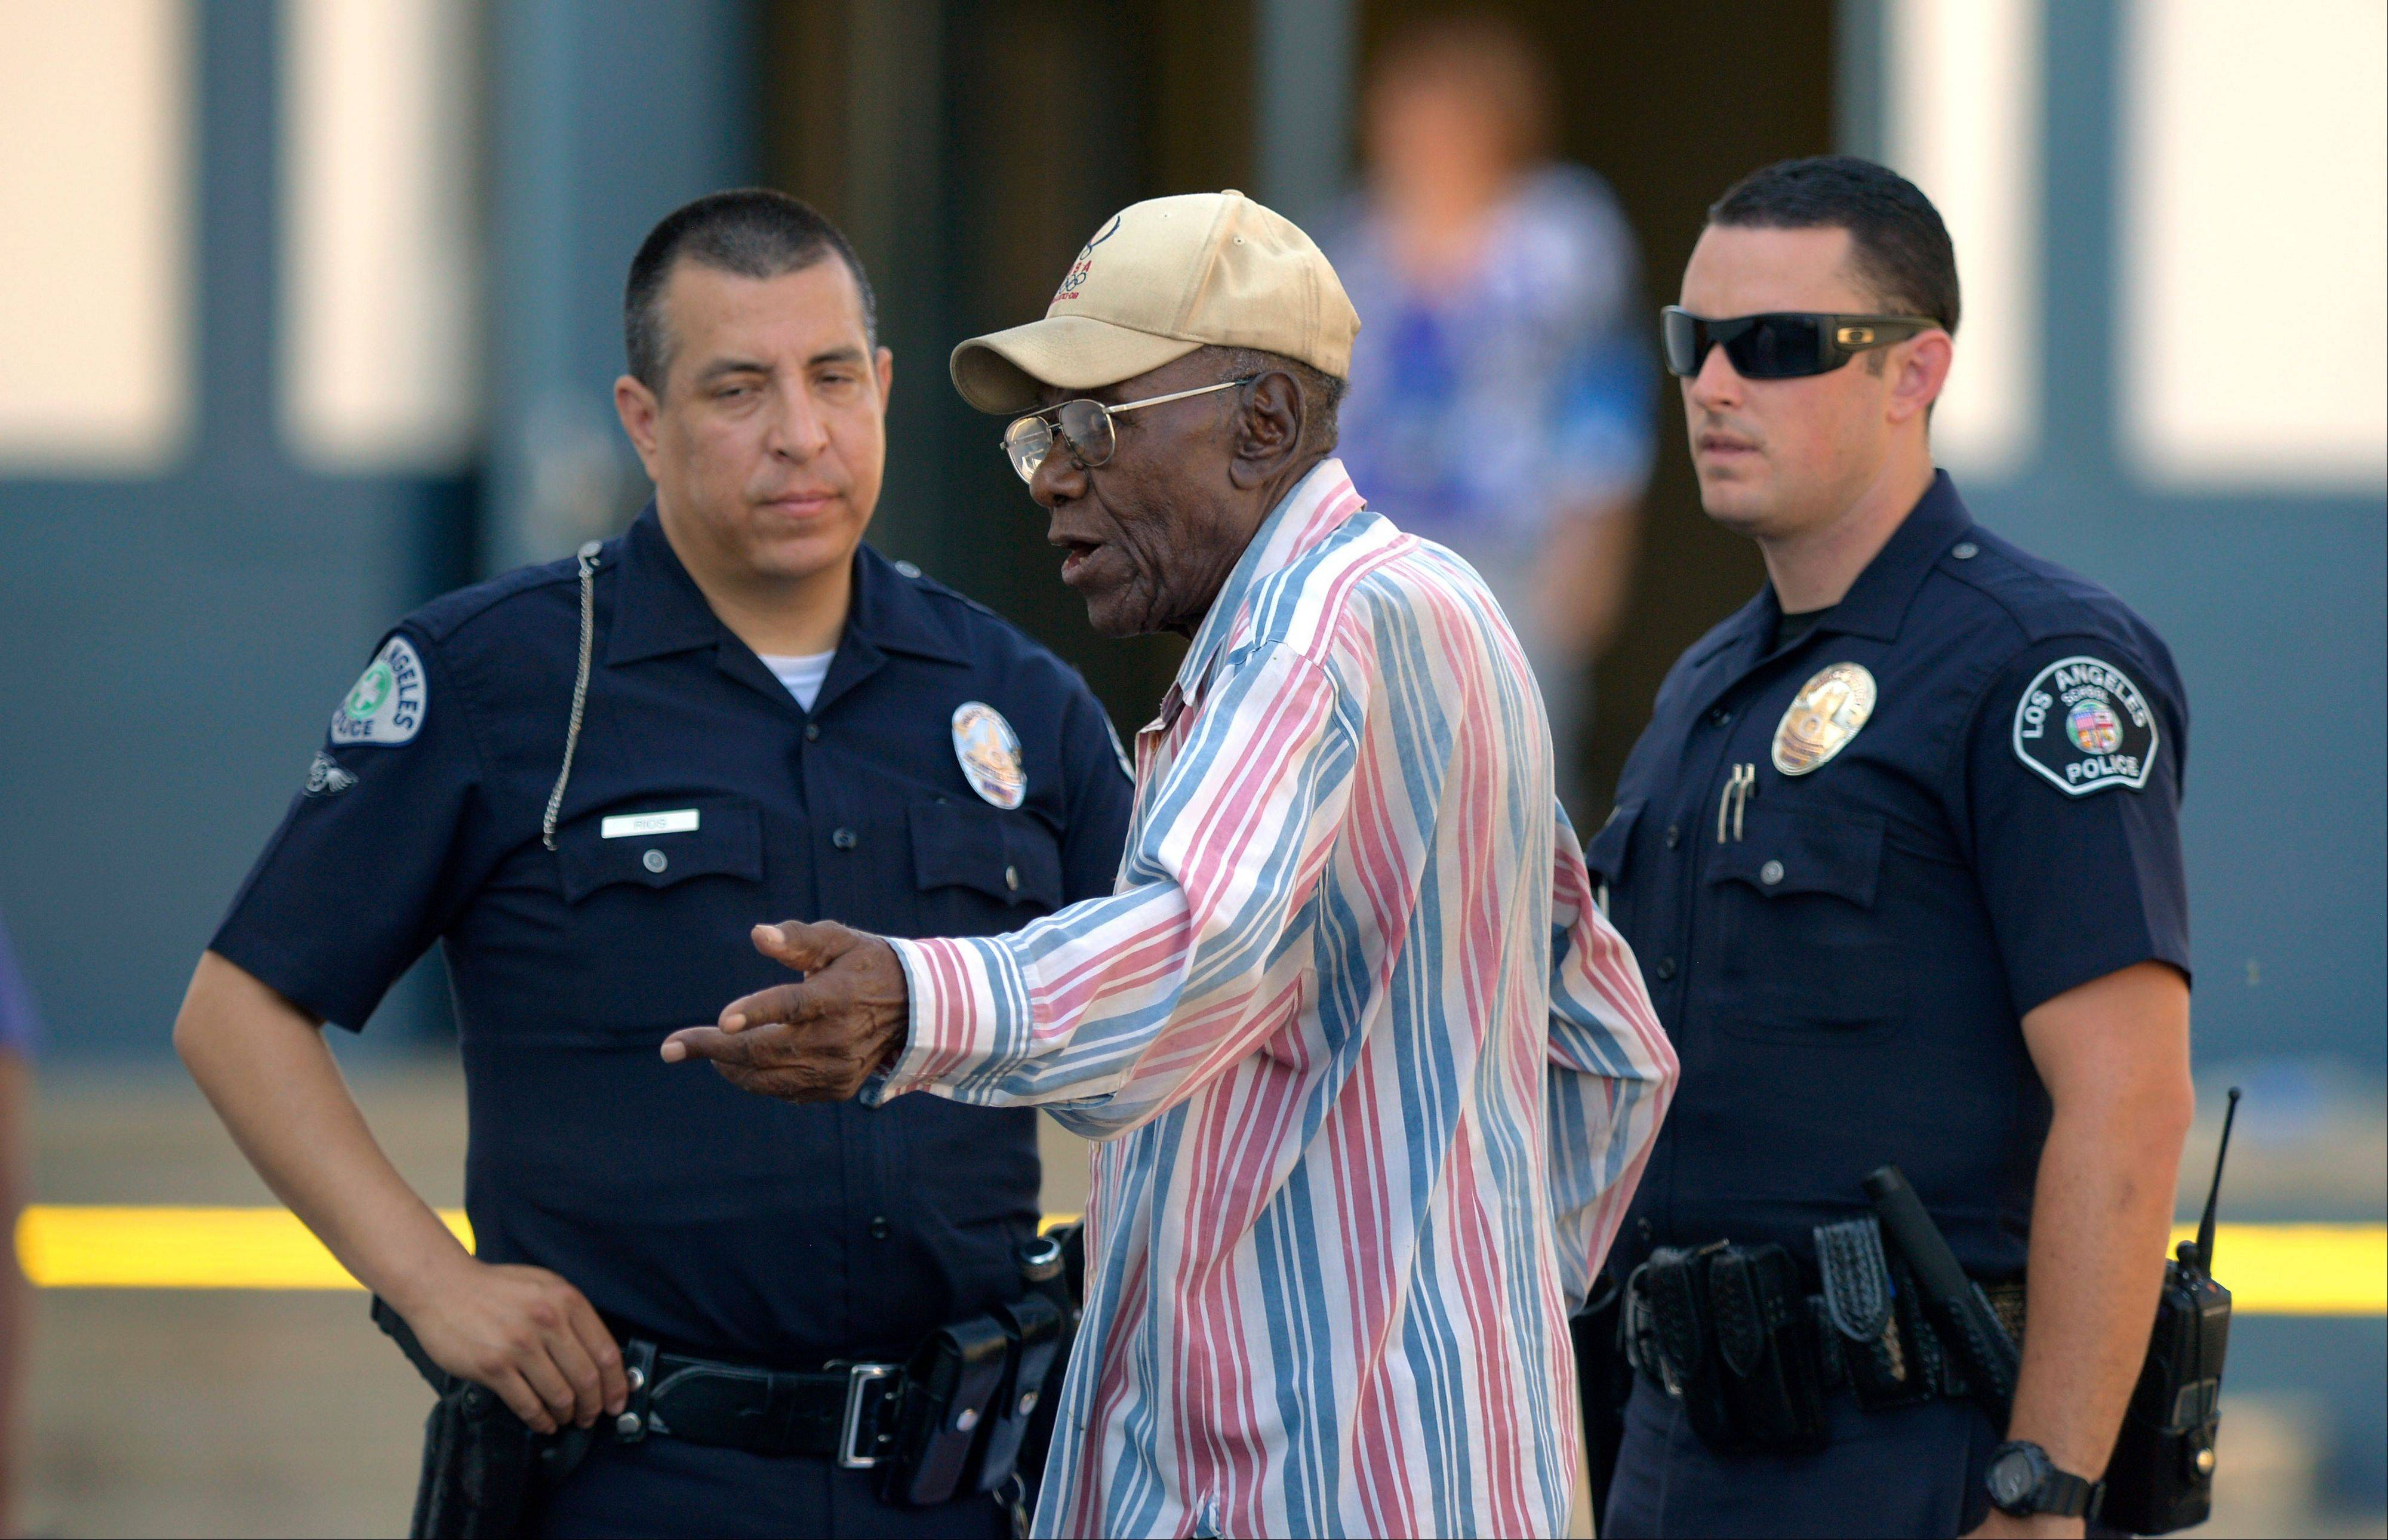 Preston Carter, 100, talks with police officers after police say his car went onto a sidewalk and plowed into a group of parents and children outside a South Los Angeles elementary school, Wednesday, Aug. 29, 2012, in Los Angeles. Nine children and two adults were injured in the wreck.